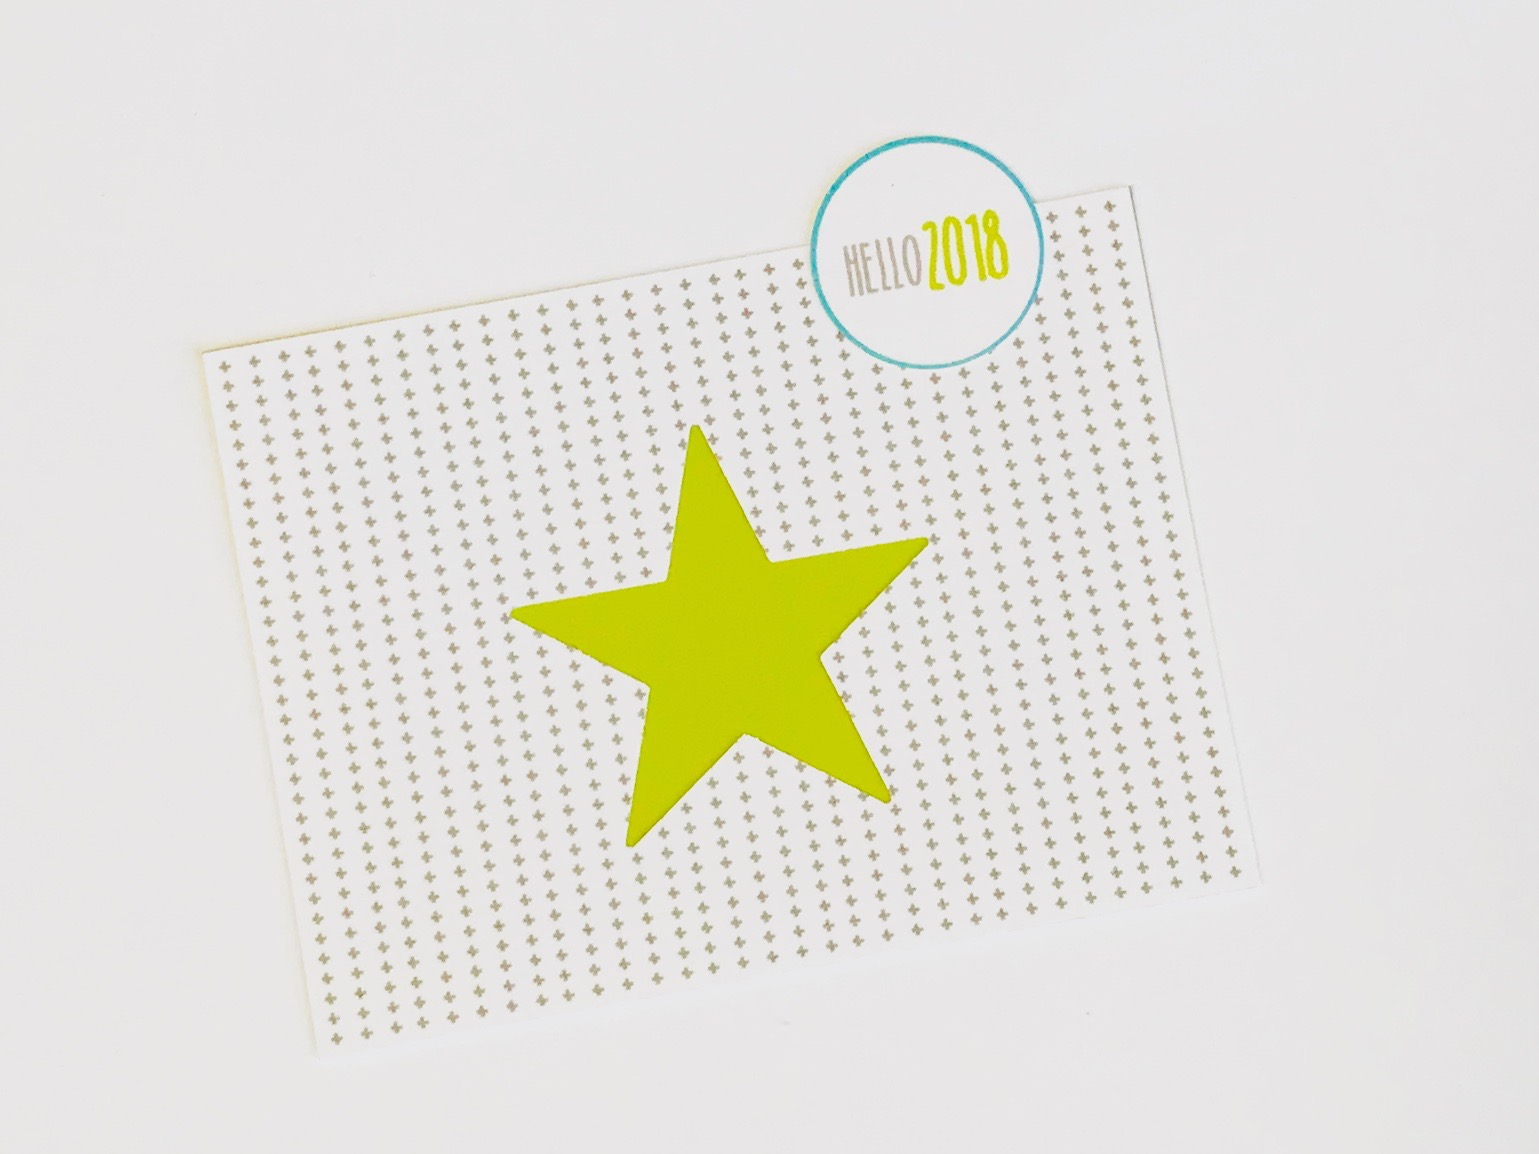 #star #plus #sign #jouranaling #card